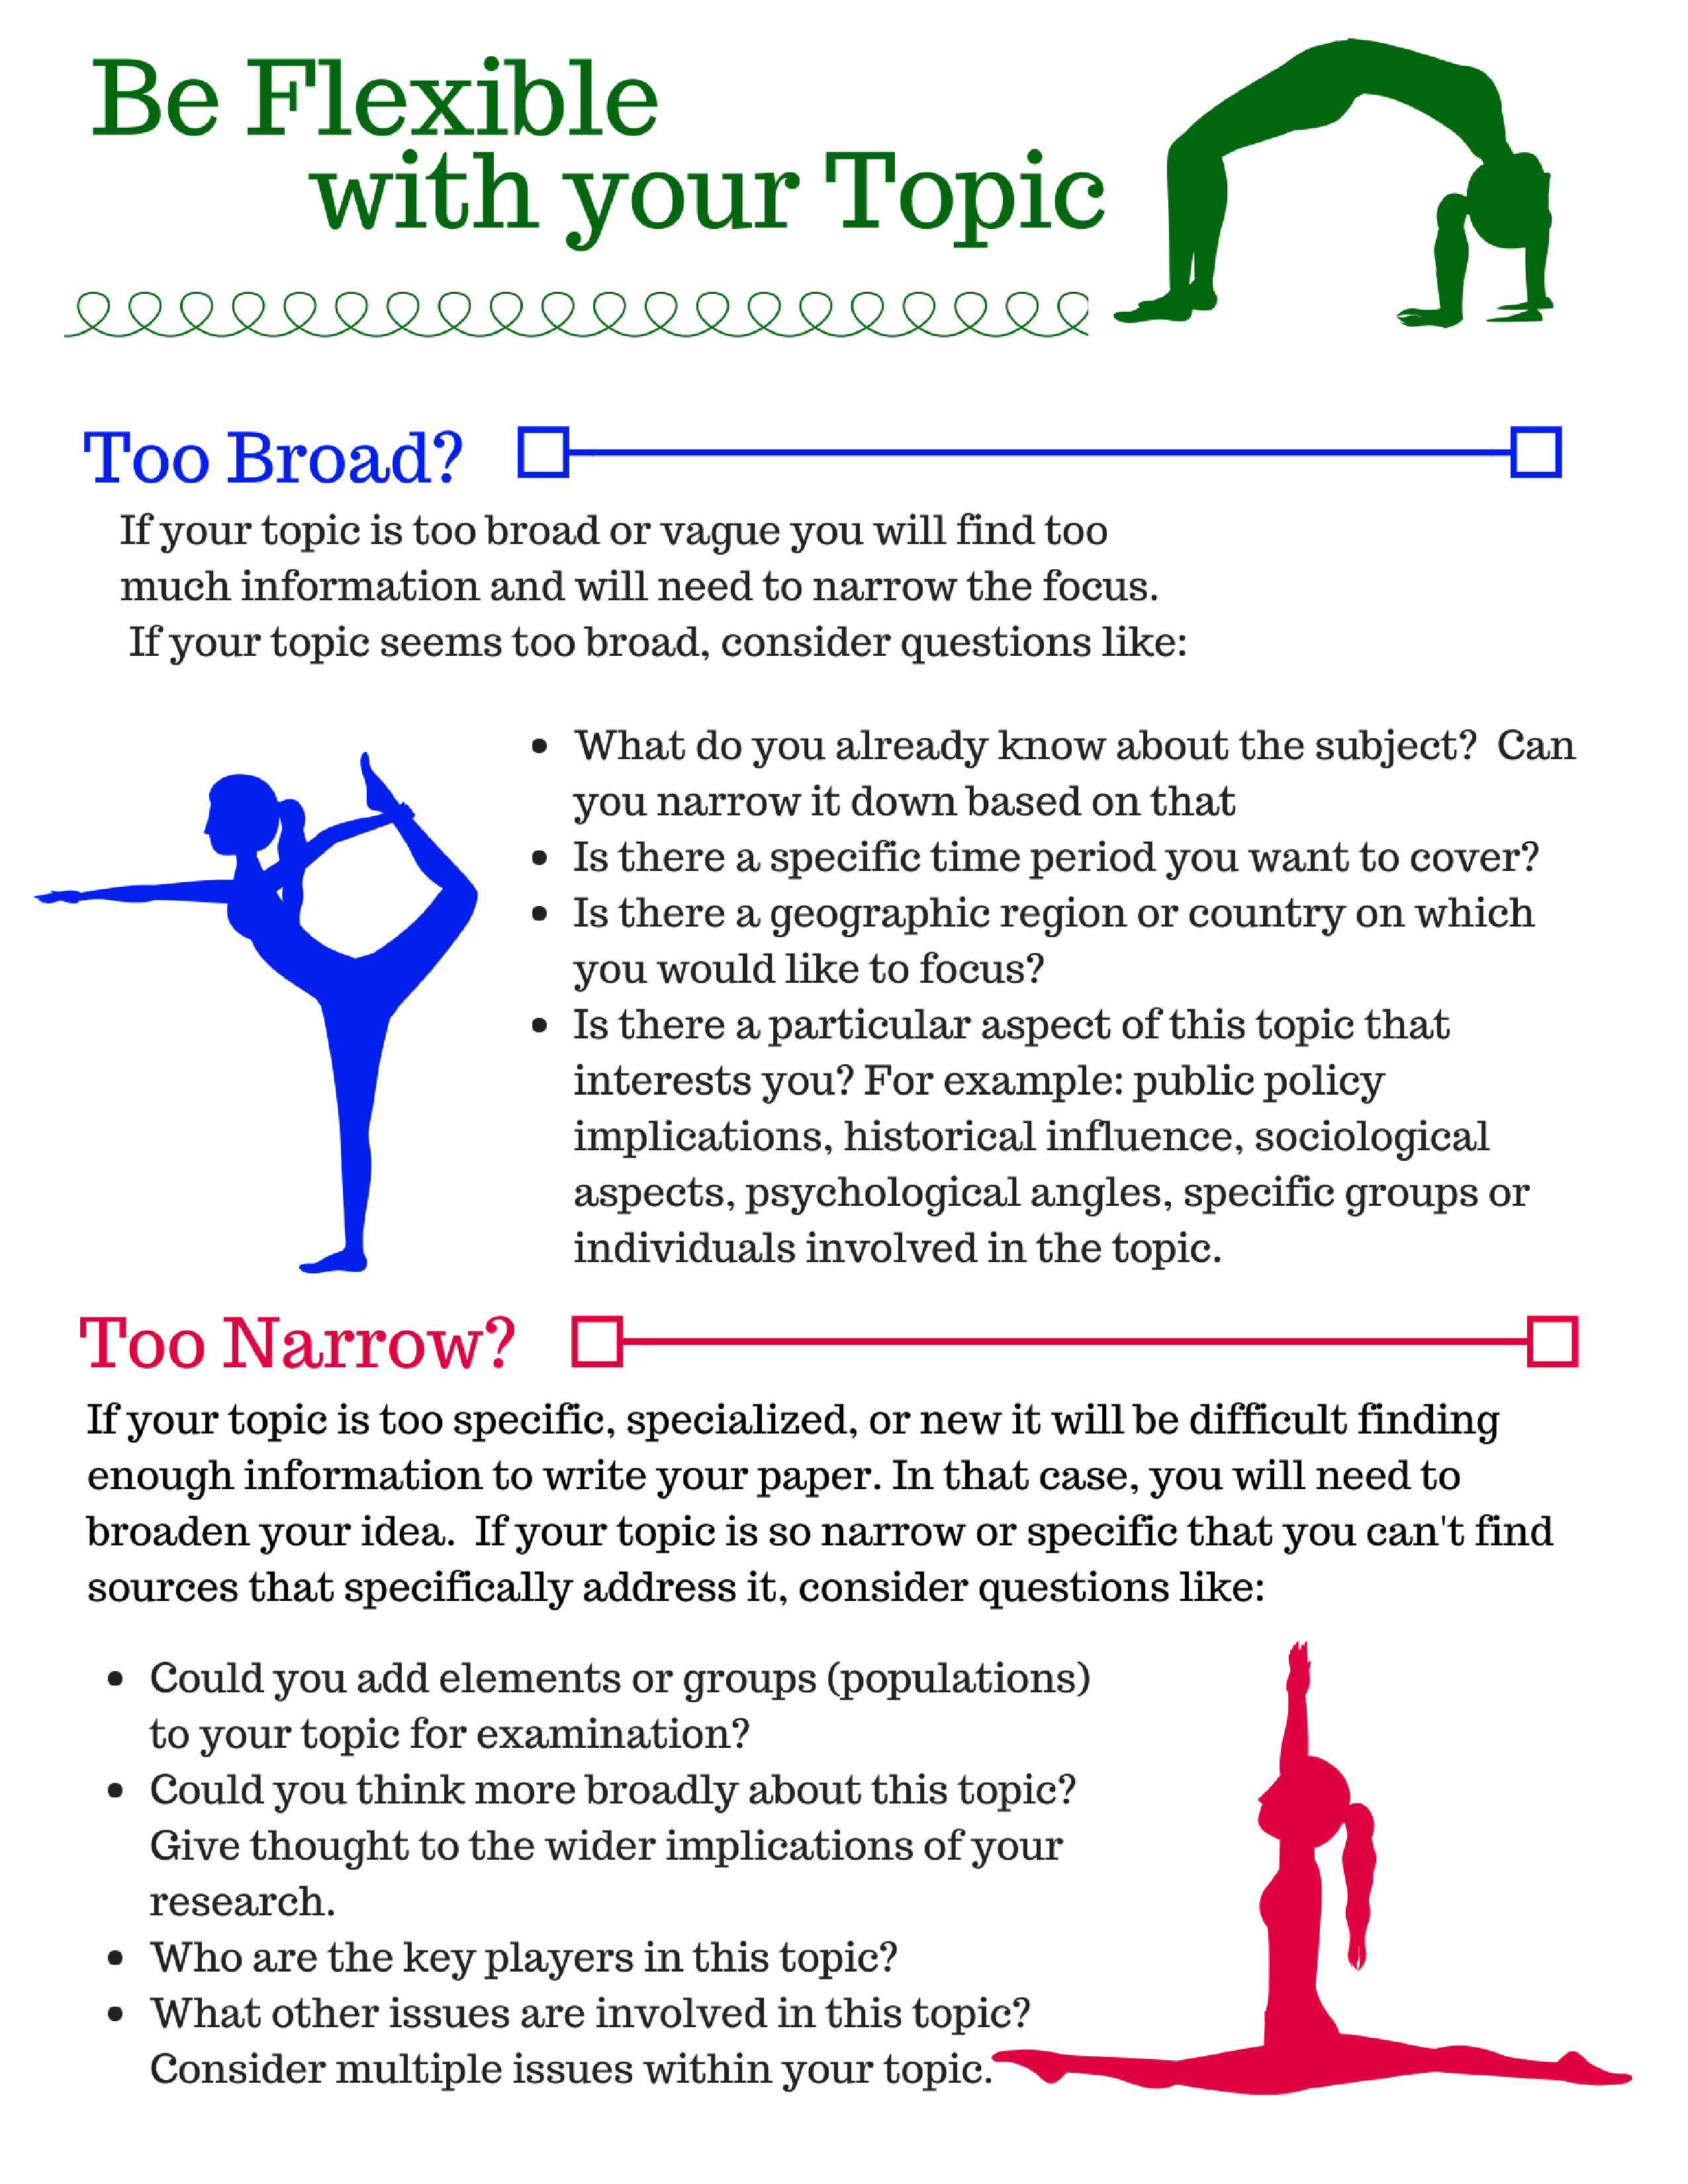 Be Flexible with your Topic infographic transcript below in PDF Documet